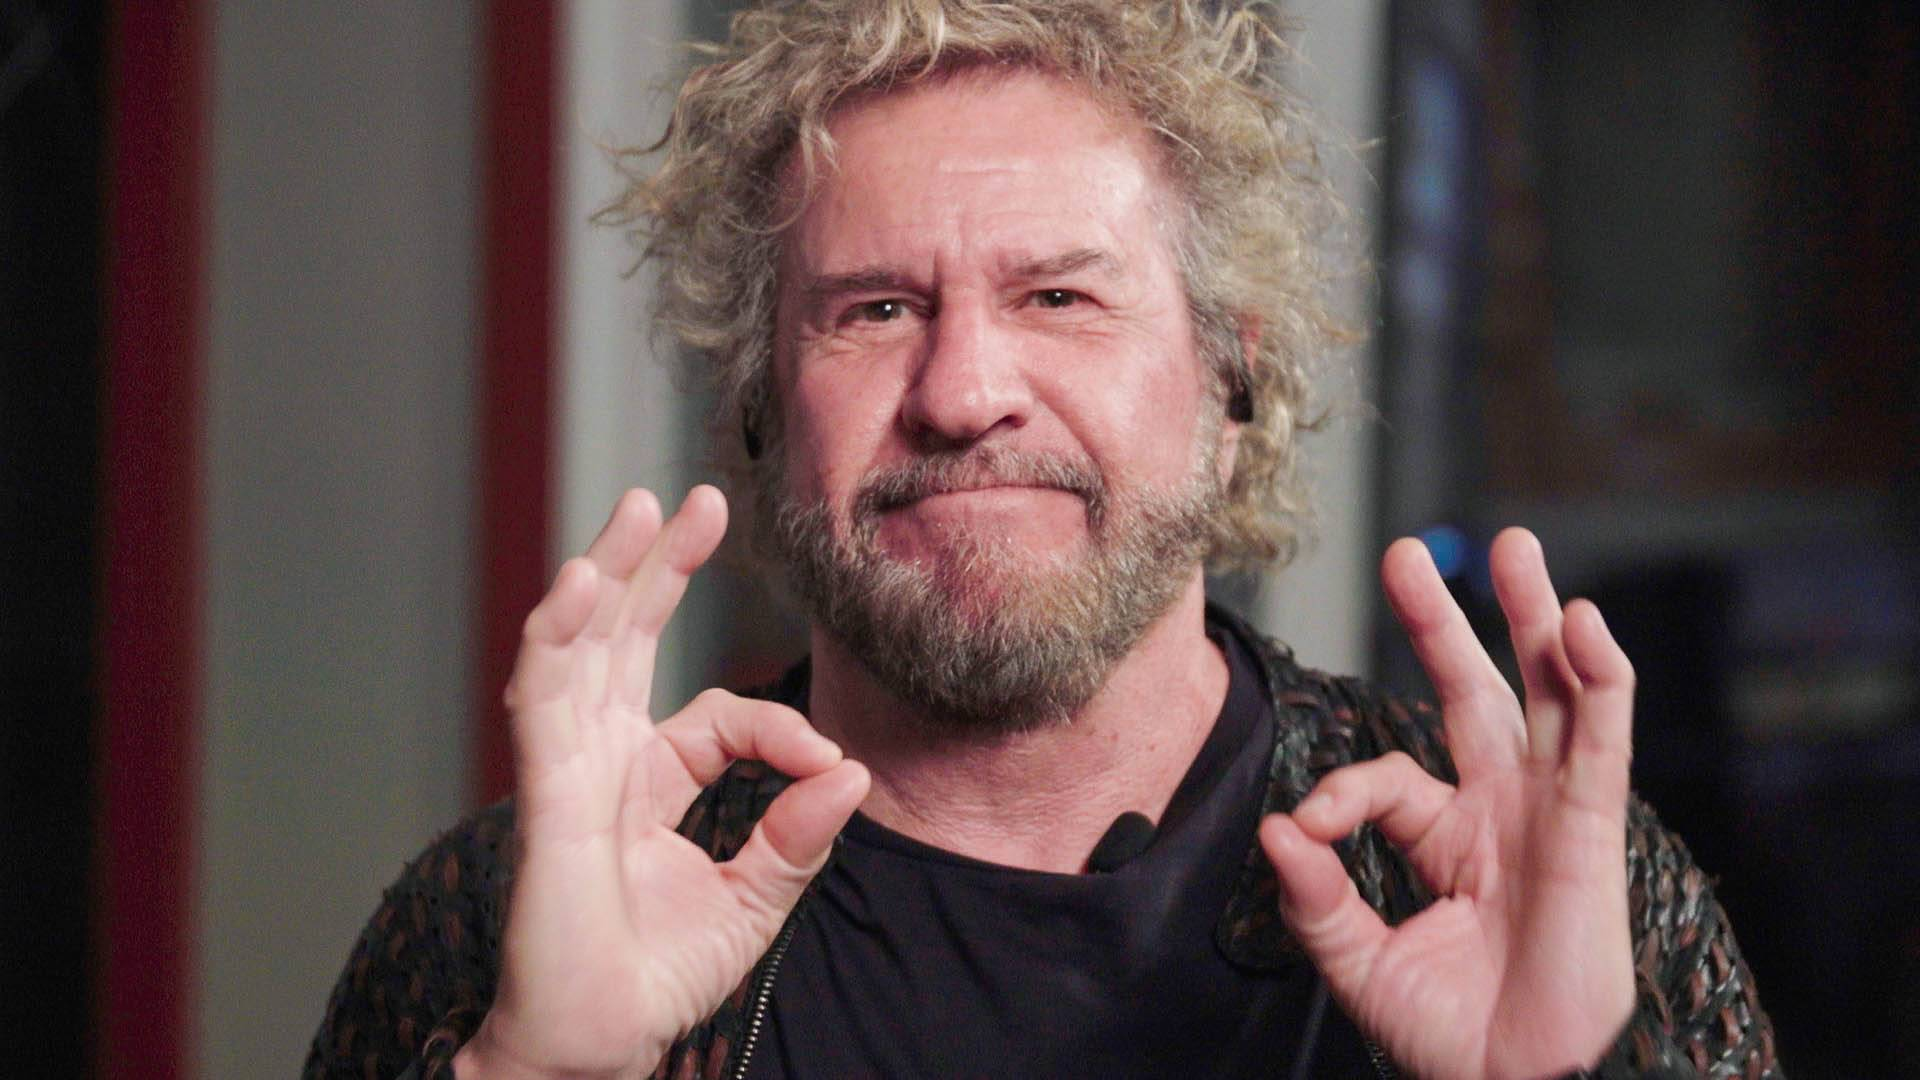 Rock and Roll Hall of Famer Sammy Hagar helped The Washington Post headbang with headphones.